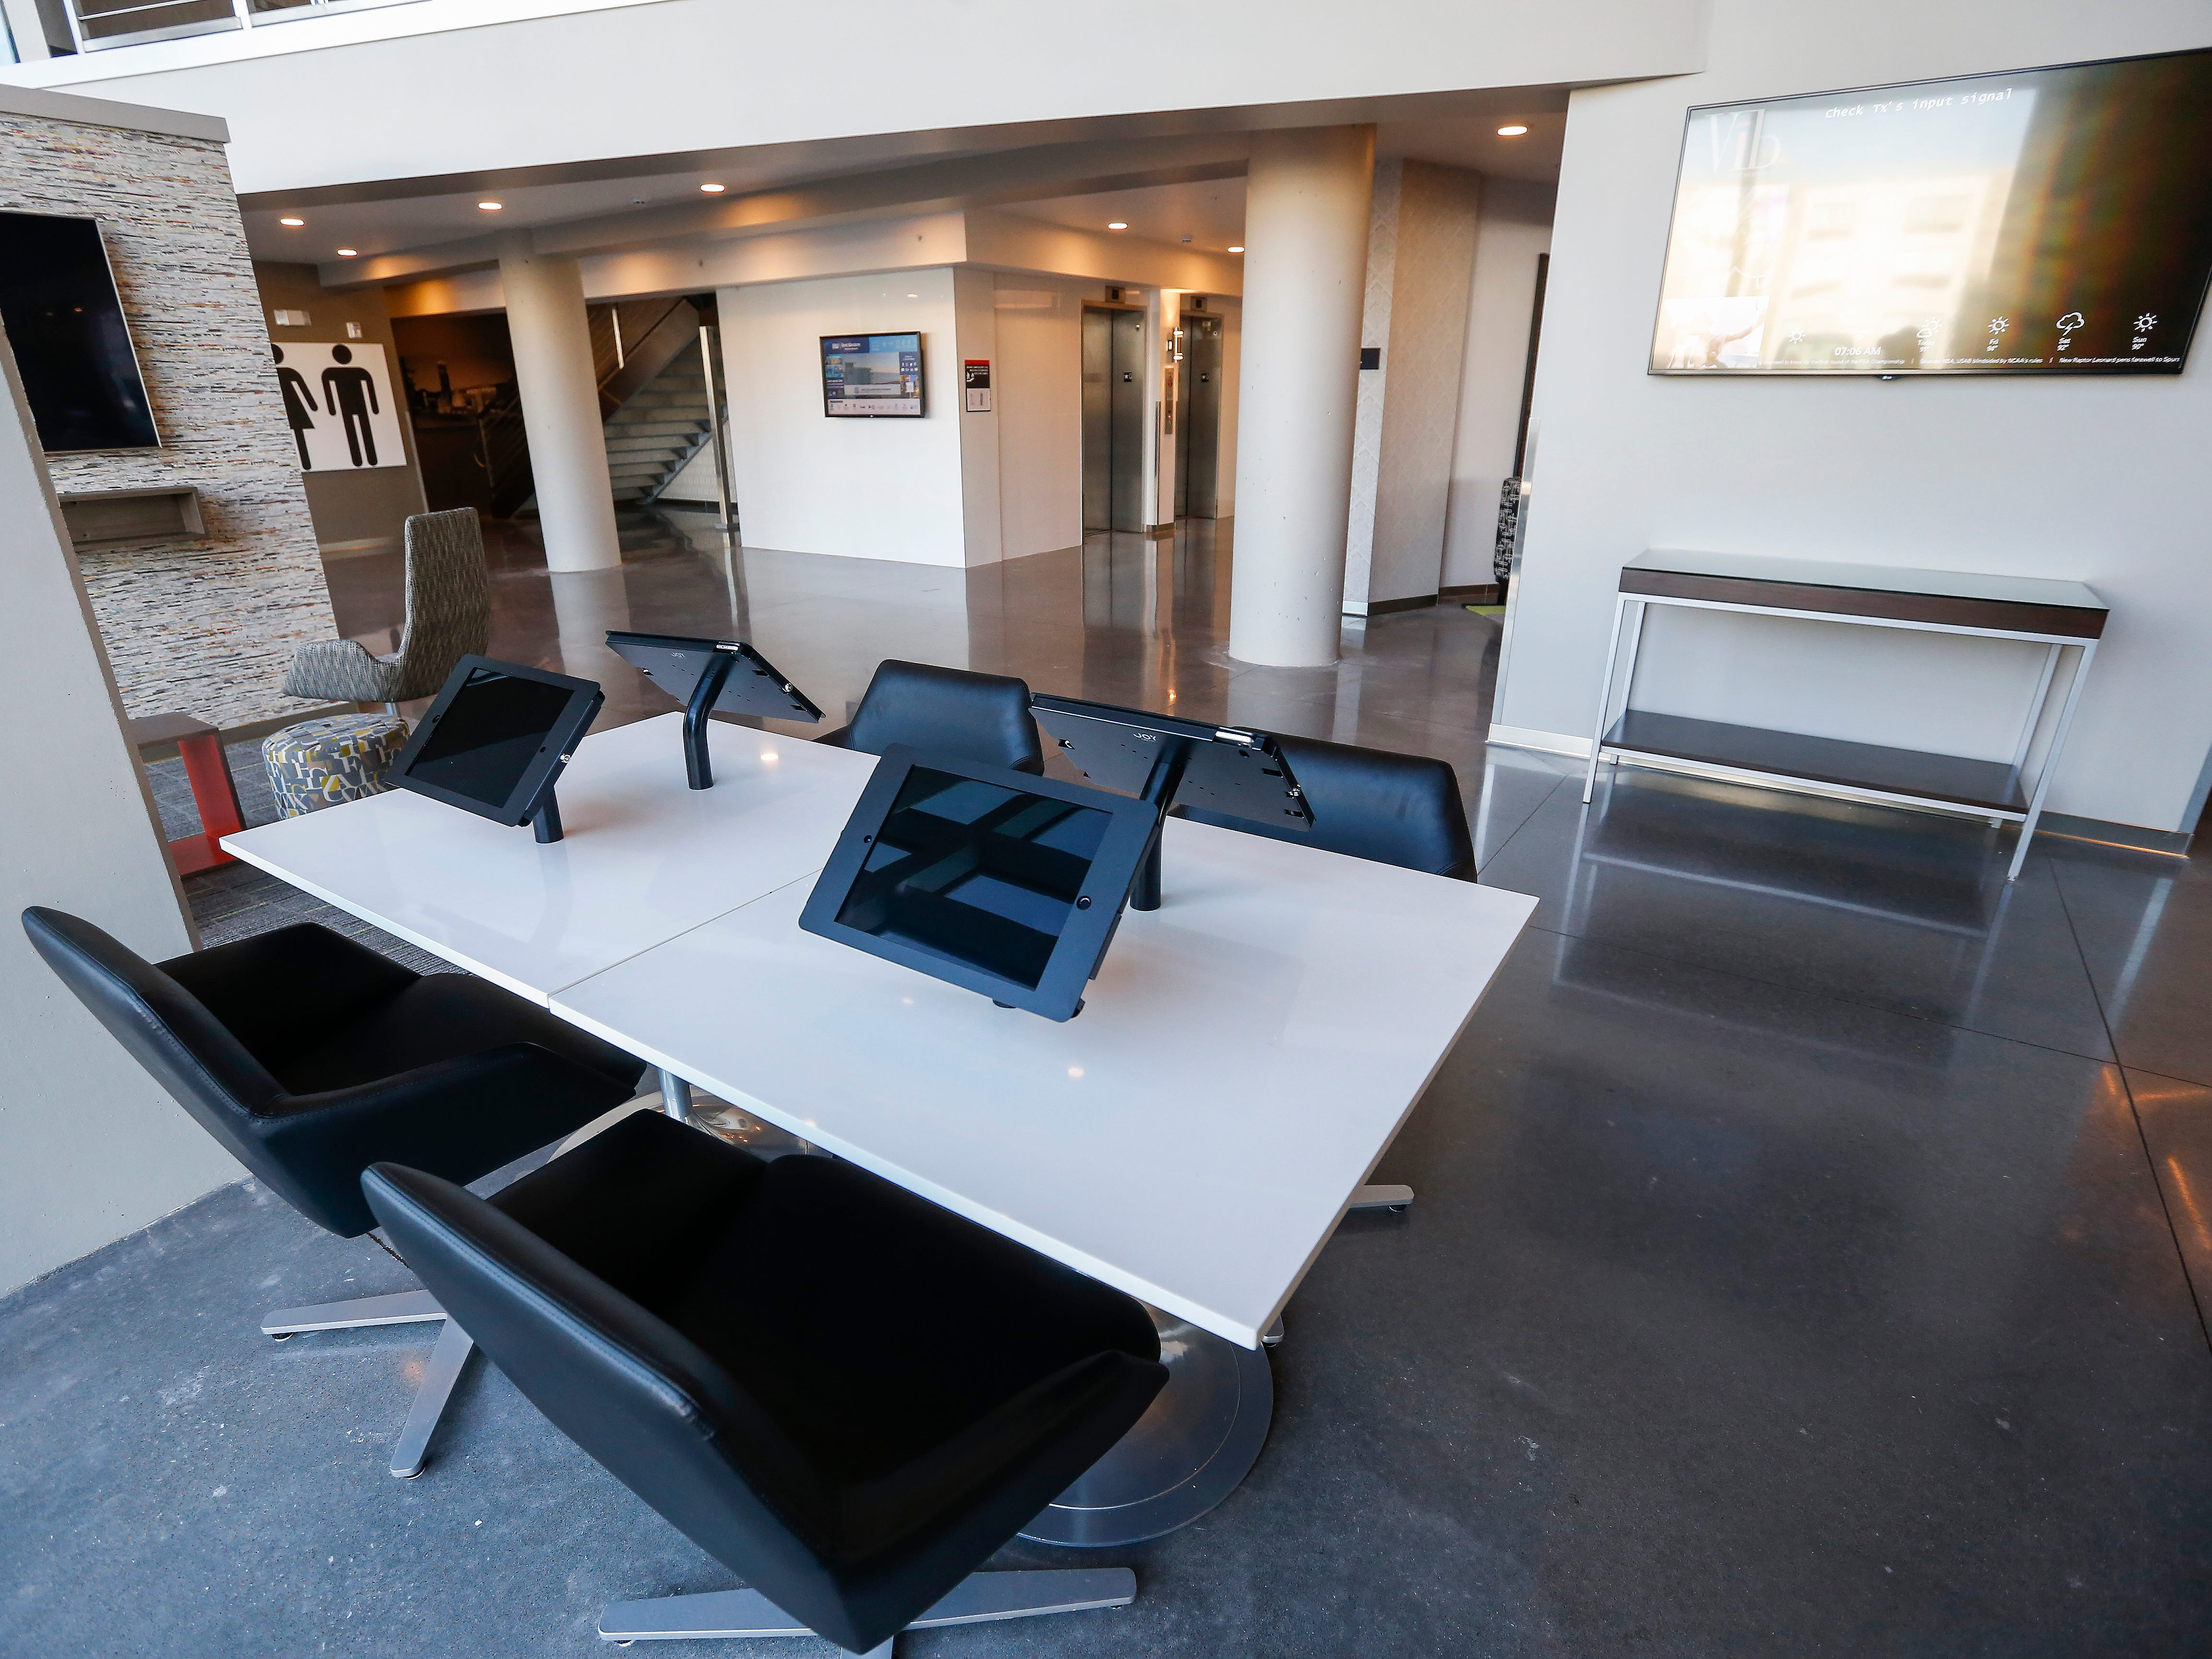 A look at the the business center inside the new Vib Hotel, located at 1845 E Sunshine St. The hotel will hold its grand opening on Friday, Aug. 10, 2018.